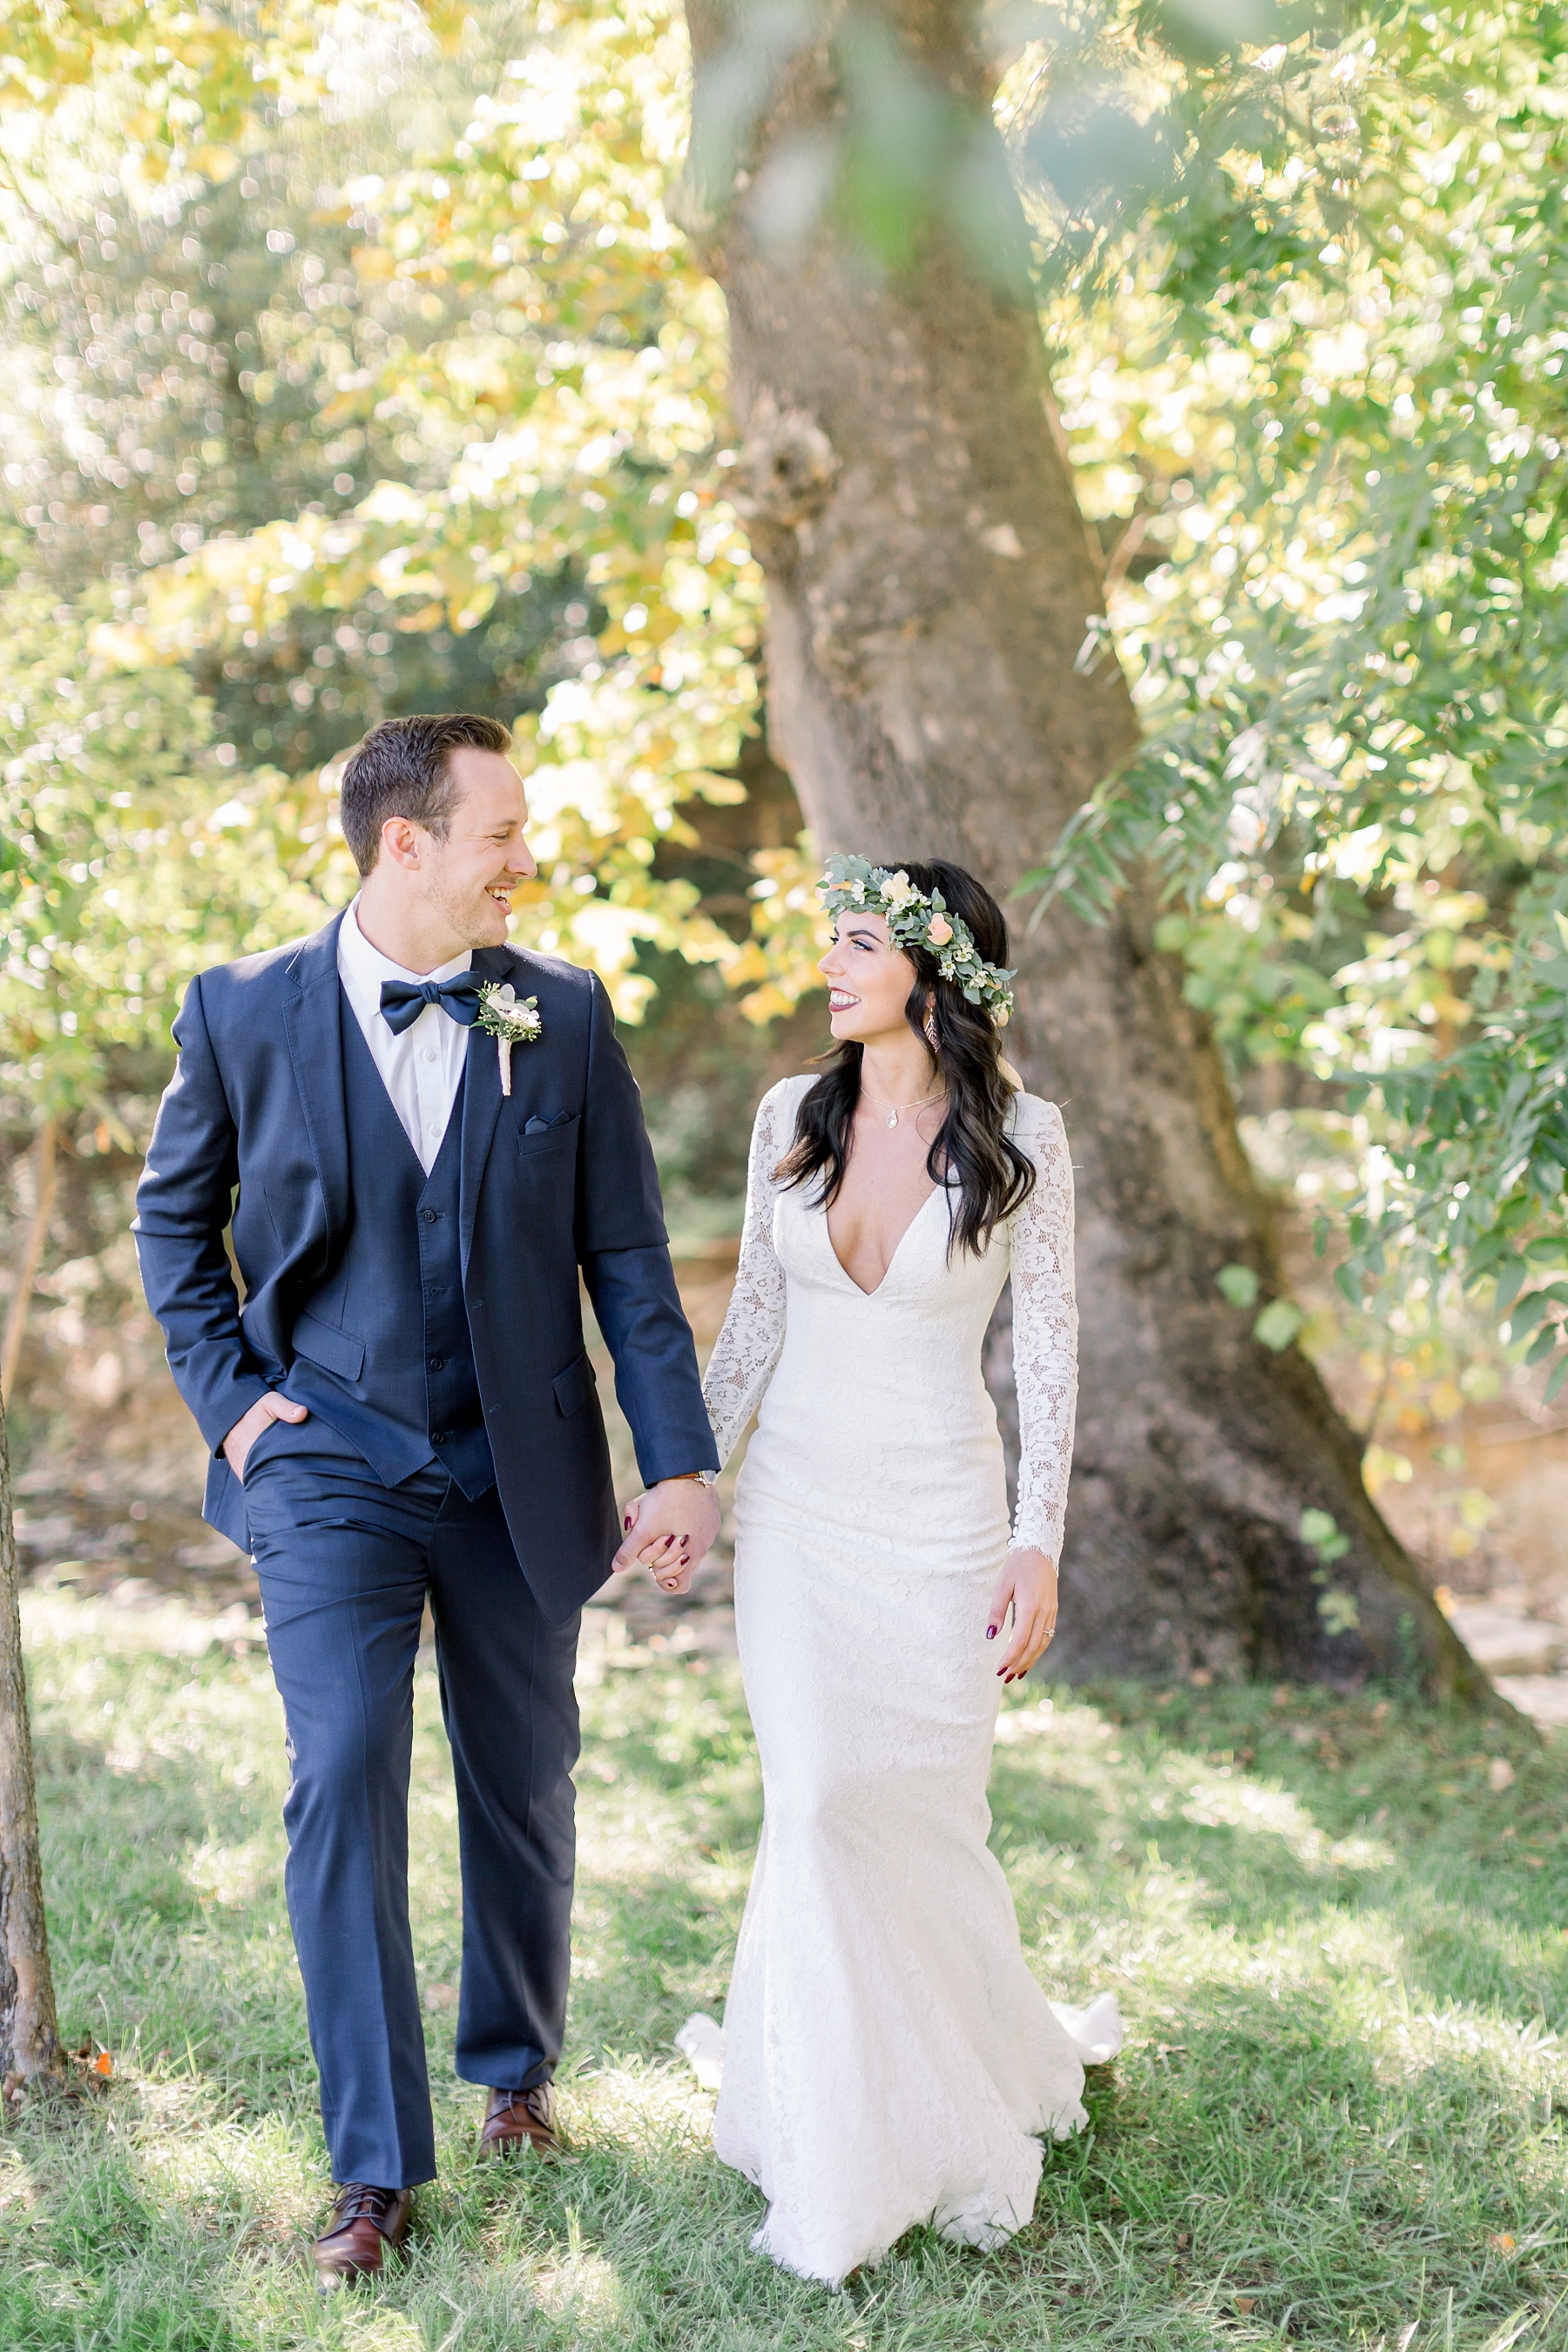 adventurous-authentic-wedding-engagement-photography-kansas-city-elizabeth-ladean-photo_5521.jpg